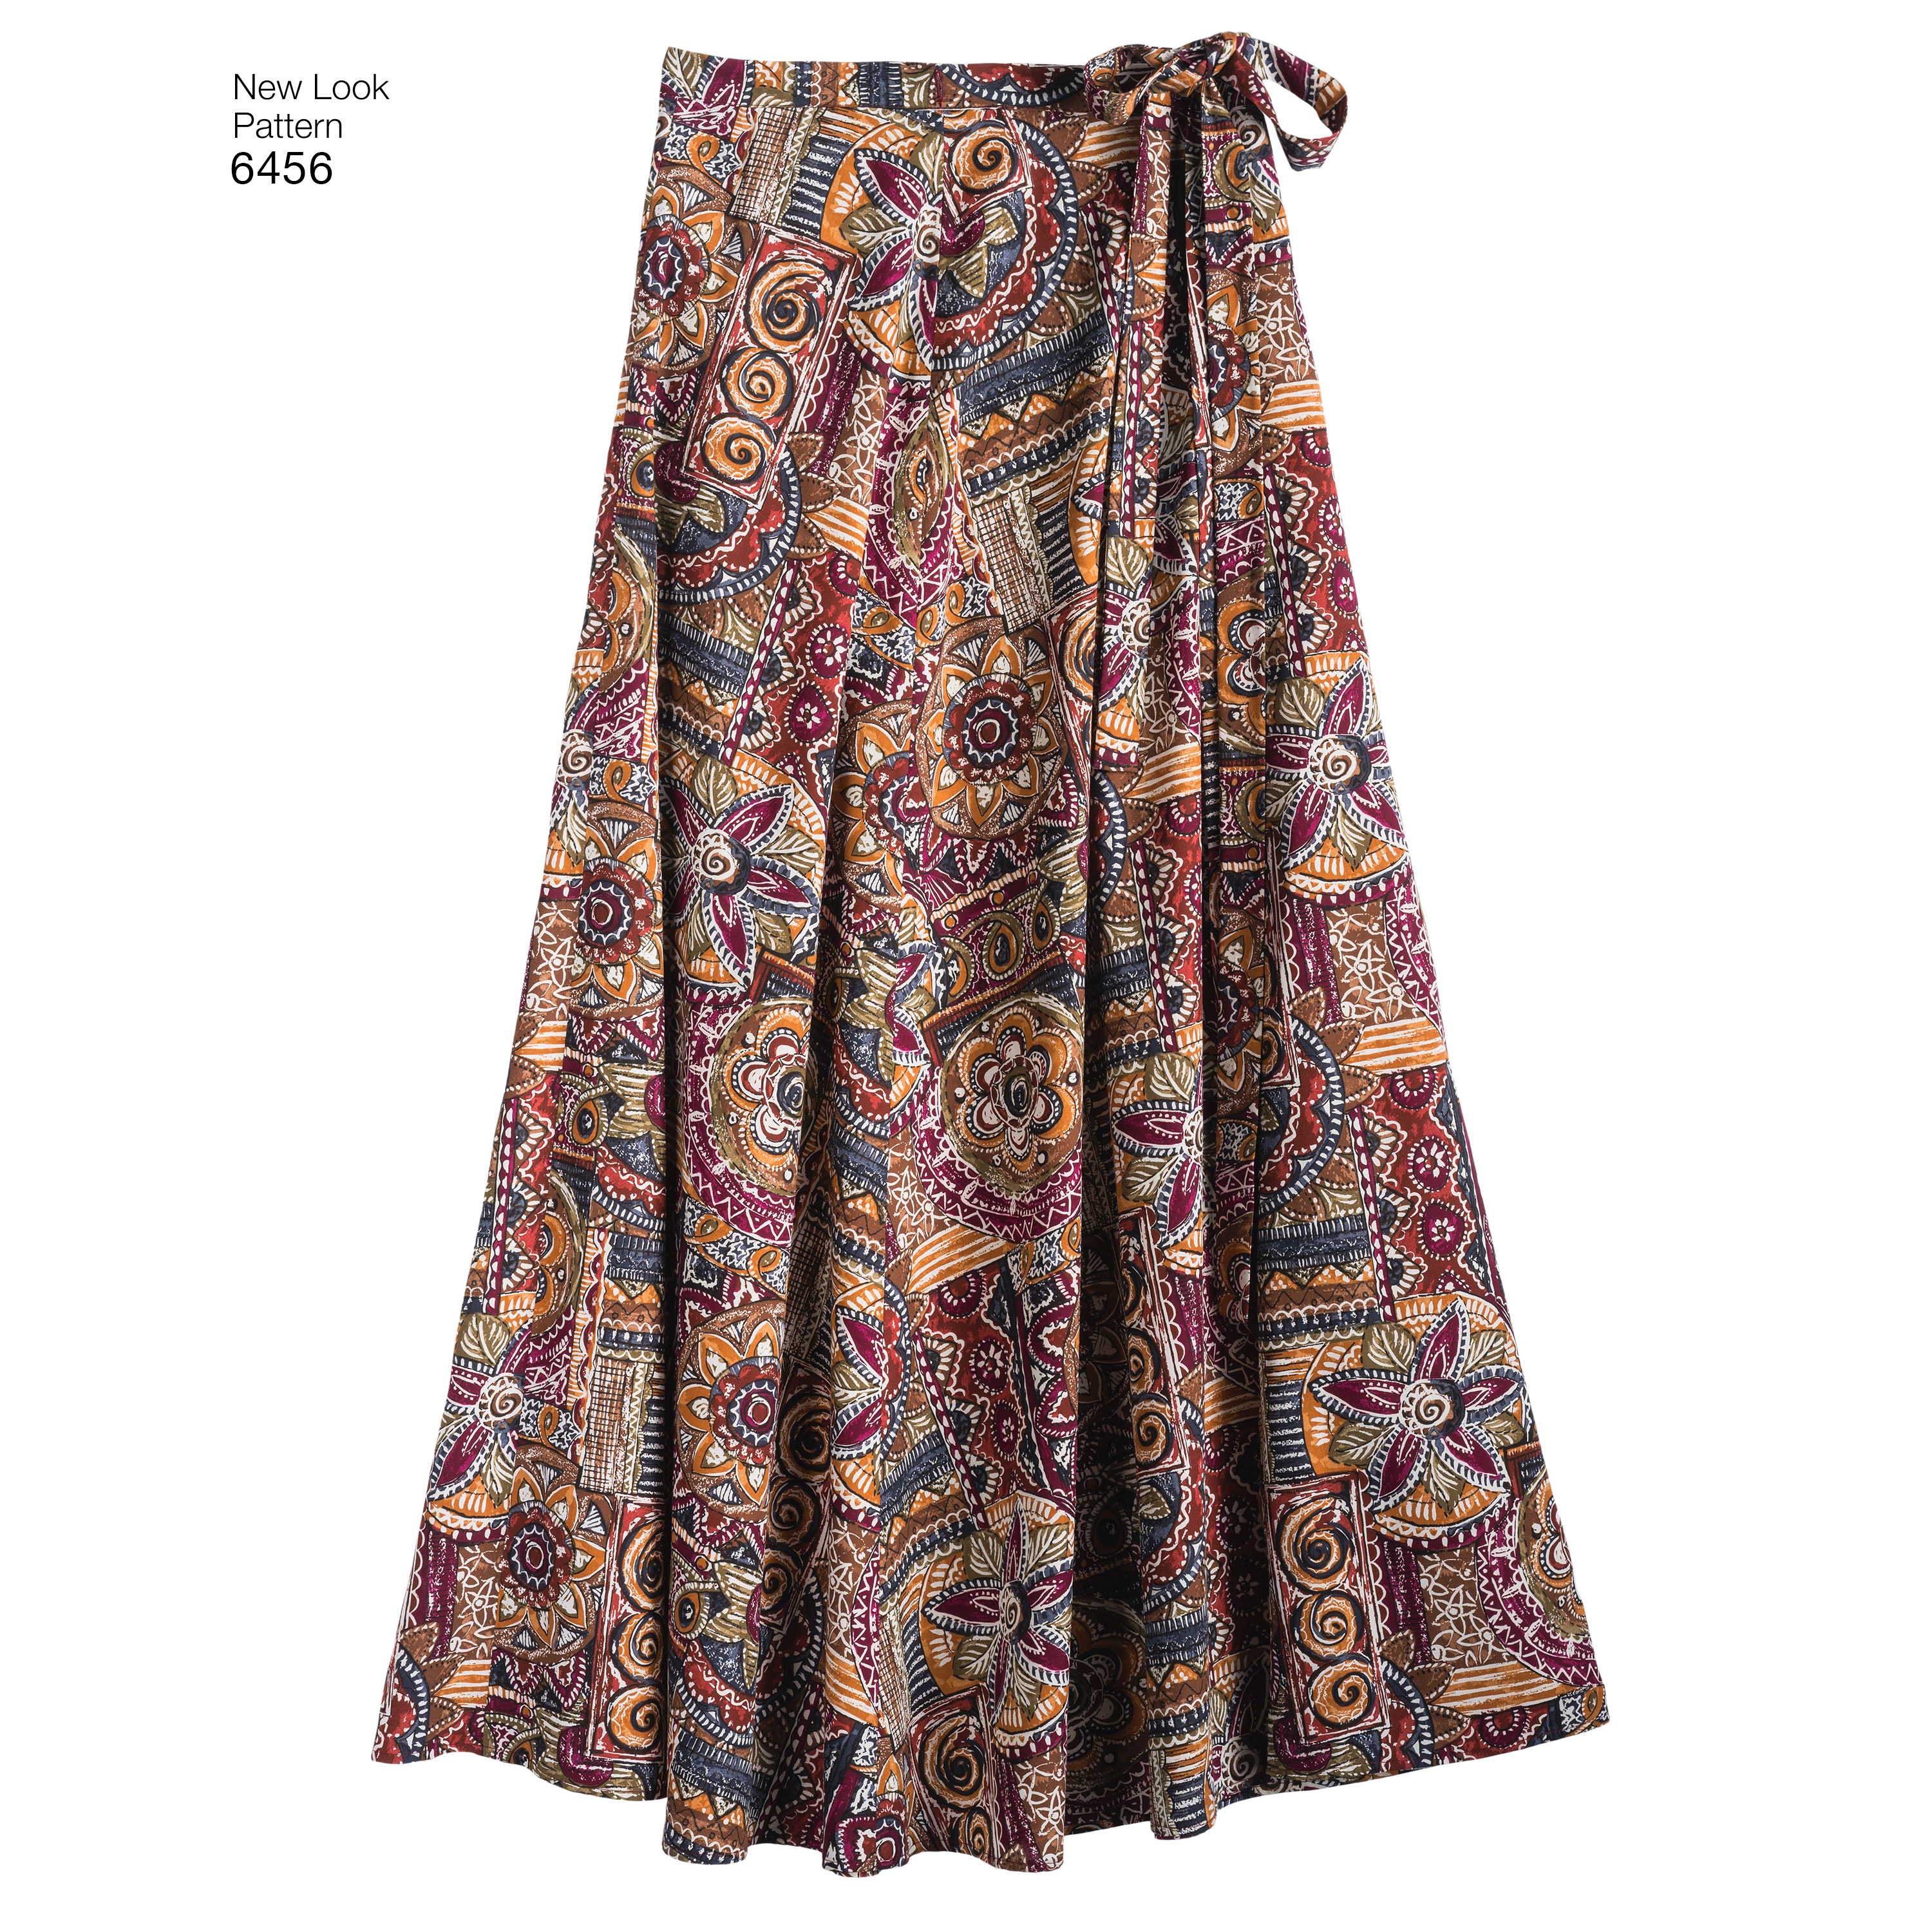 Misses' Easy Wrap Skirts in Four Lengths: 6456